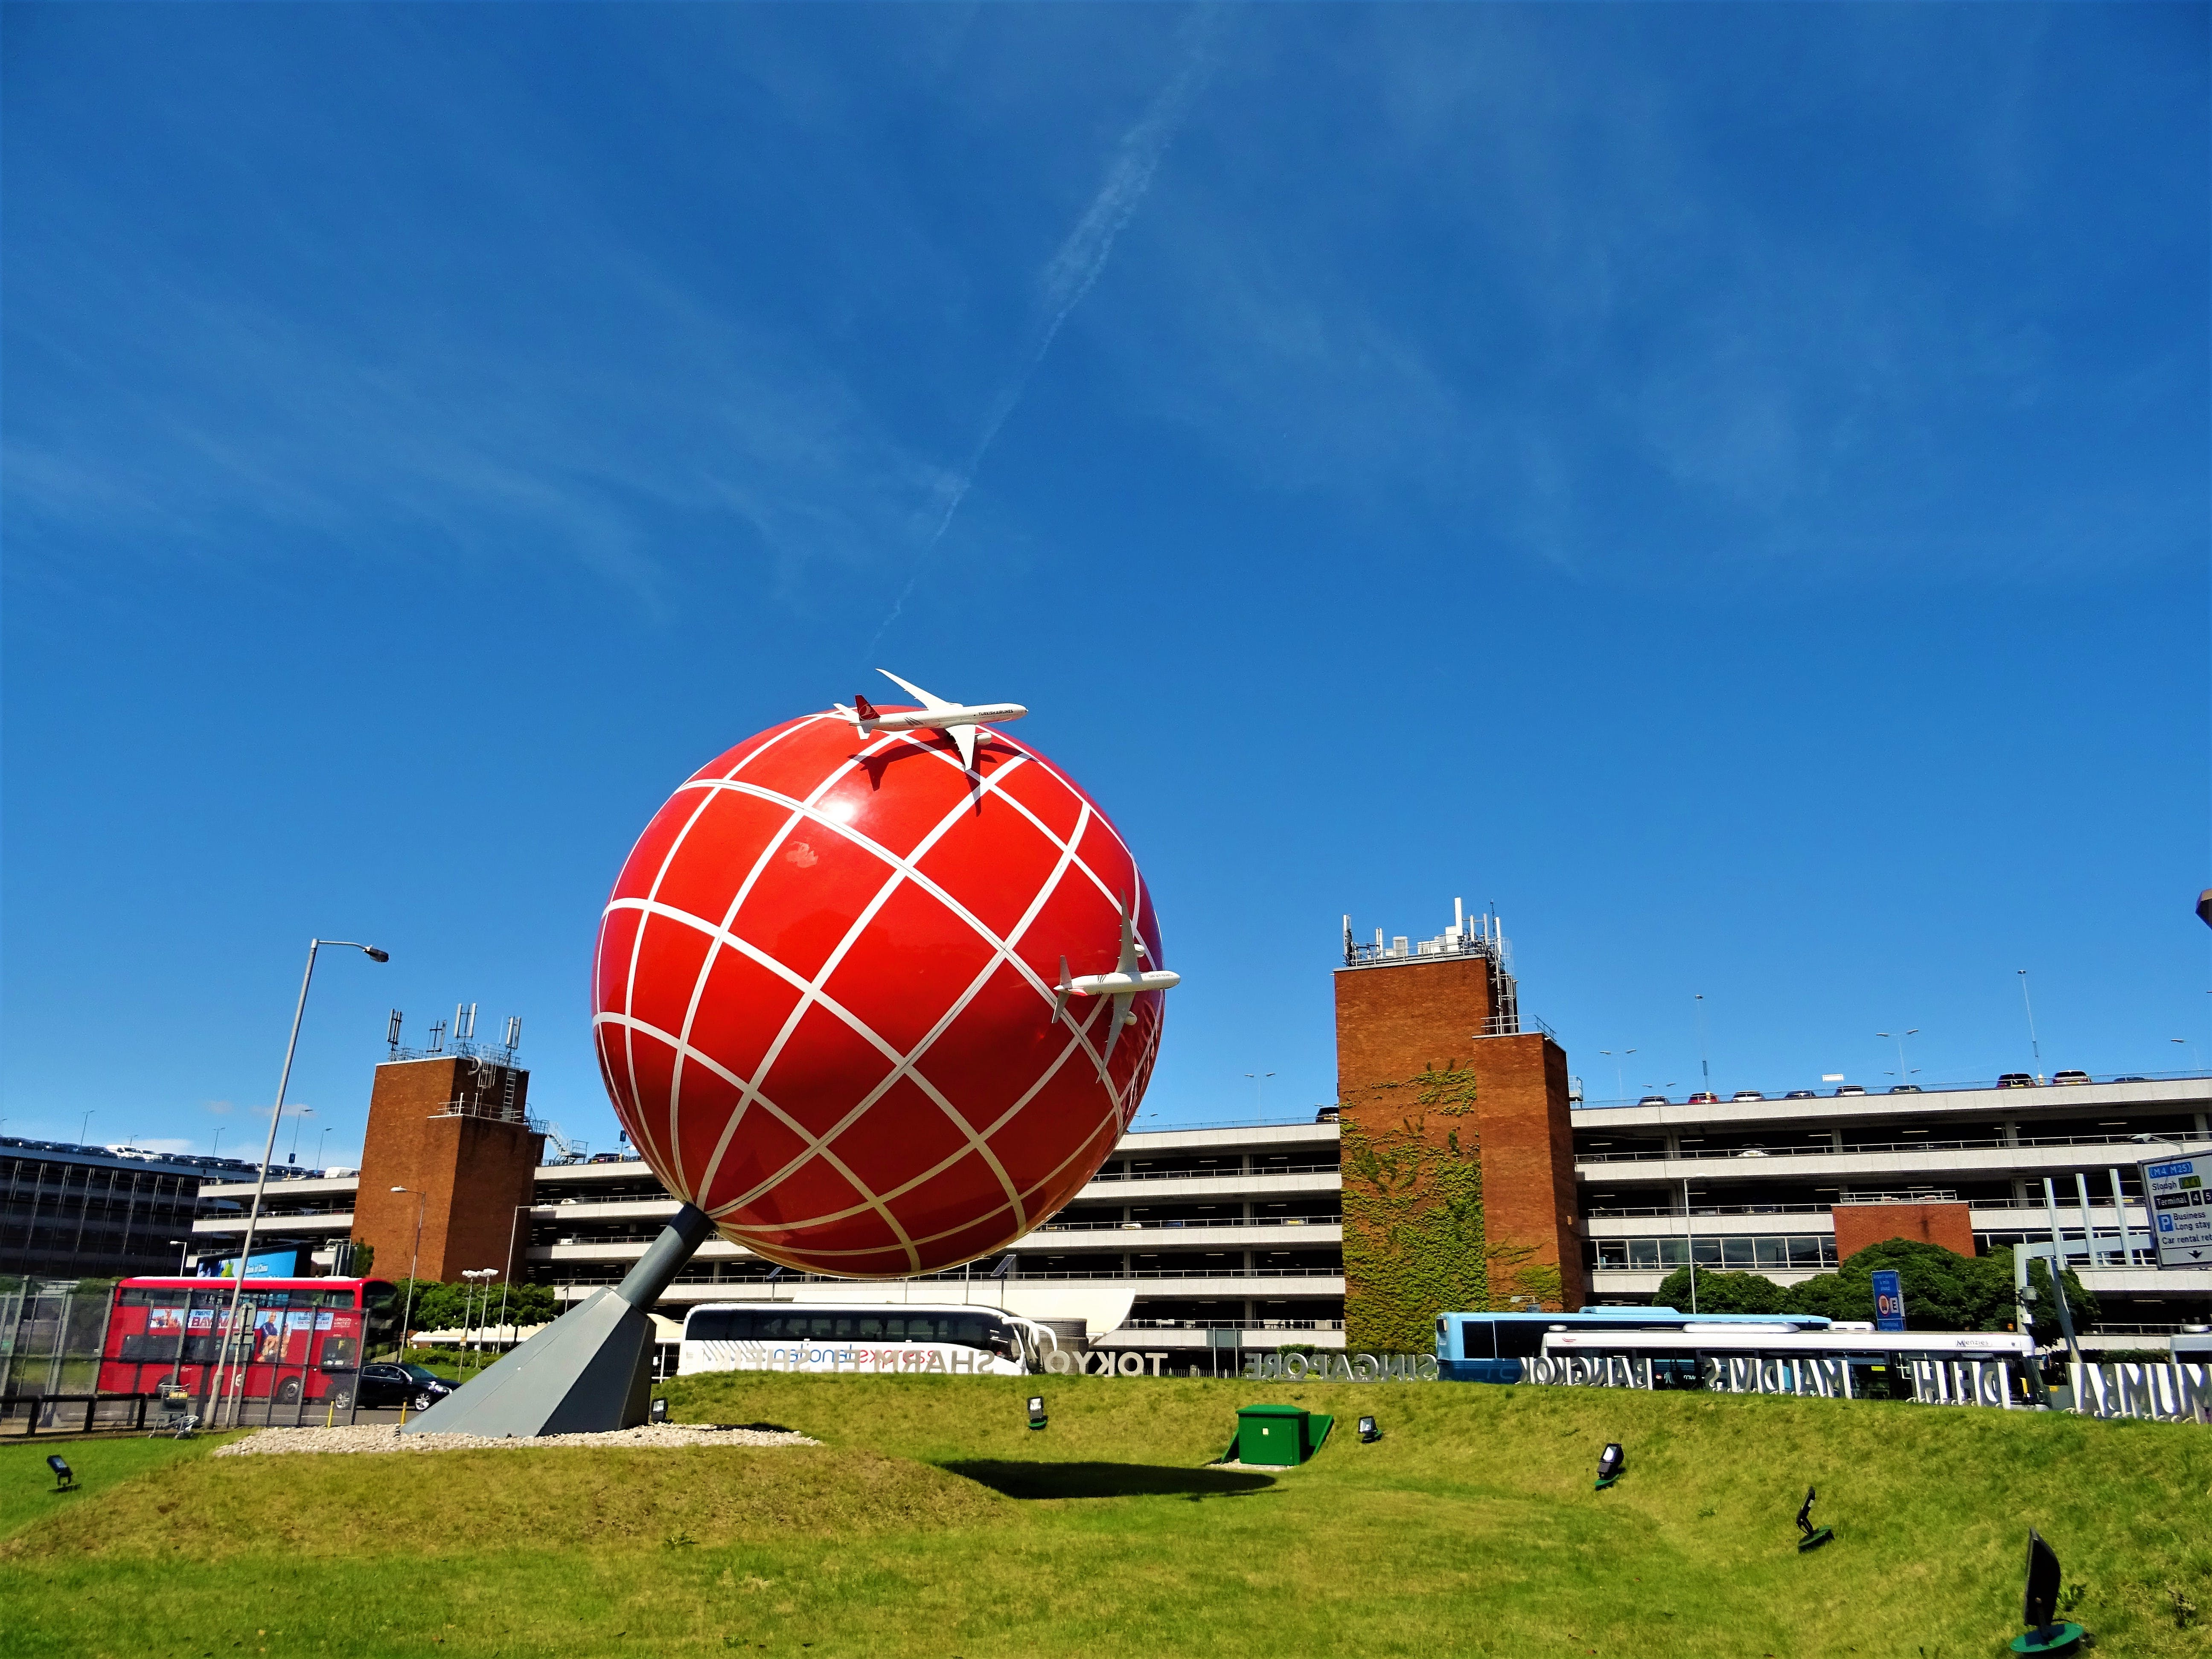 Red and White Globe Statue Near Brown and White Concrete Building